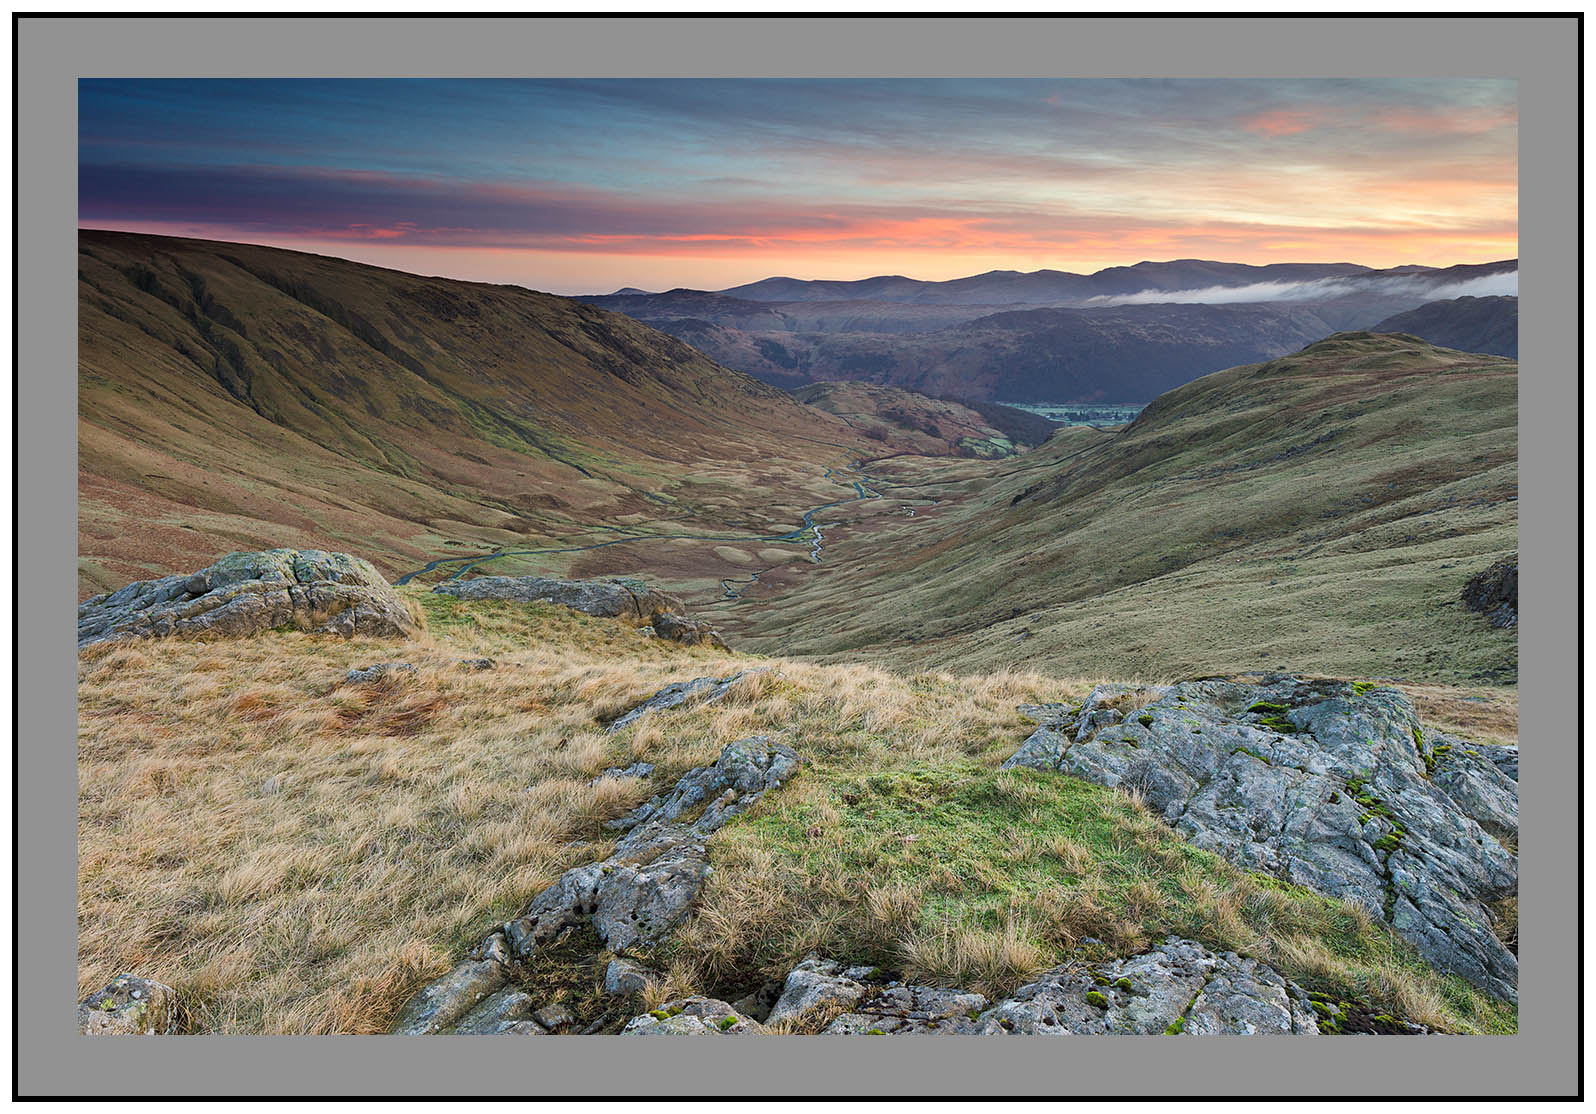 S2014375 Sunrise over Borrowdale from Grey Knotts